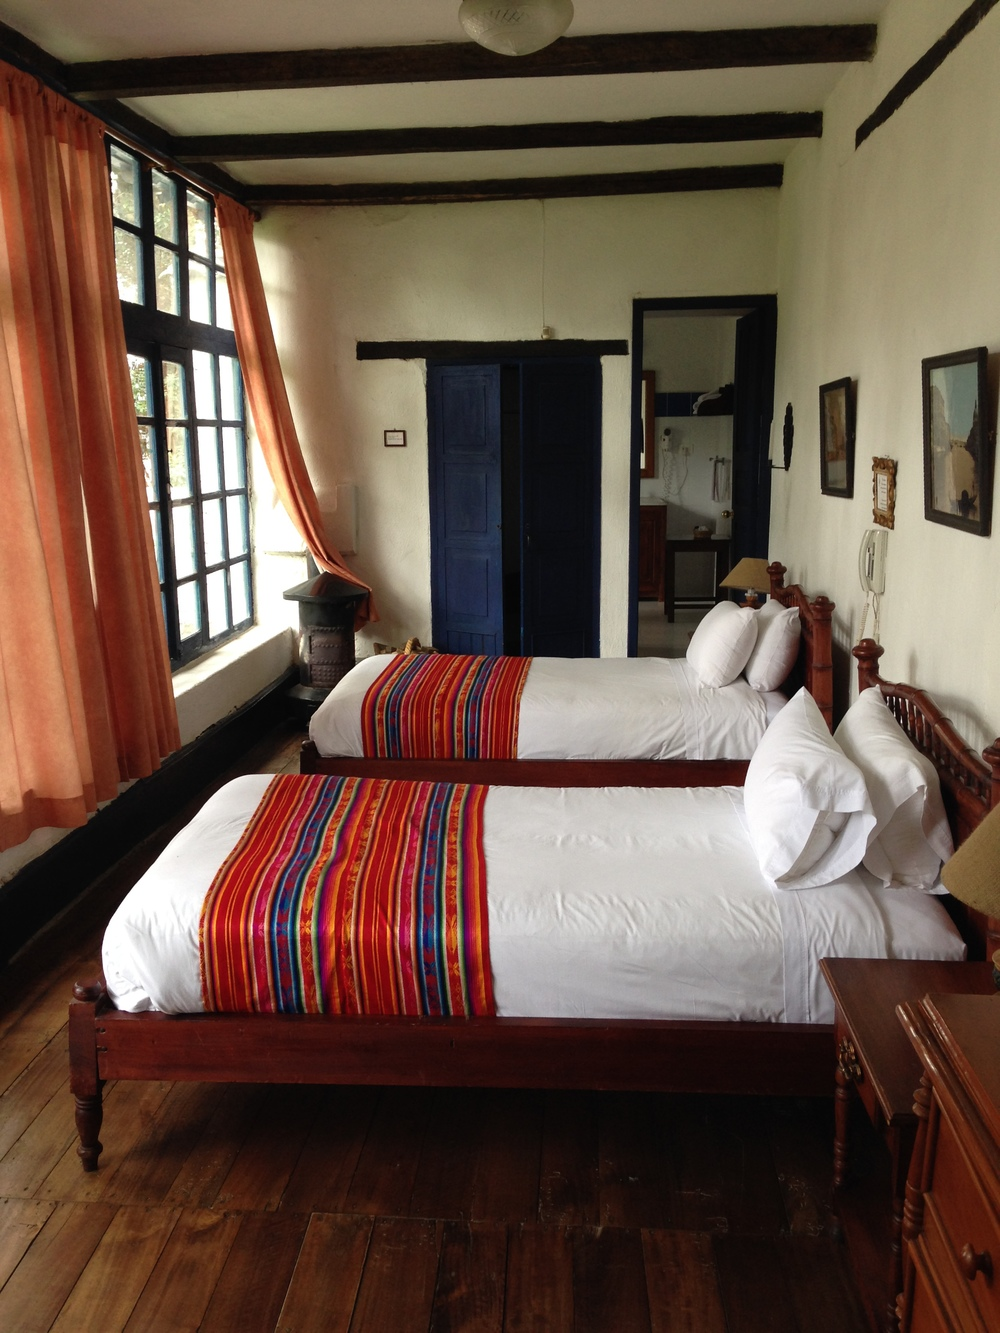 One of the rooms at the Hacienda.